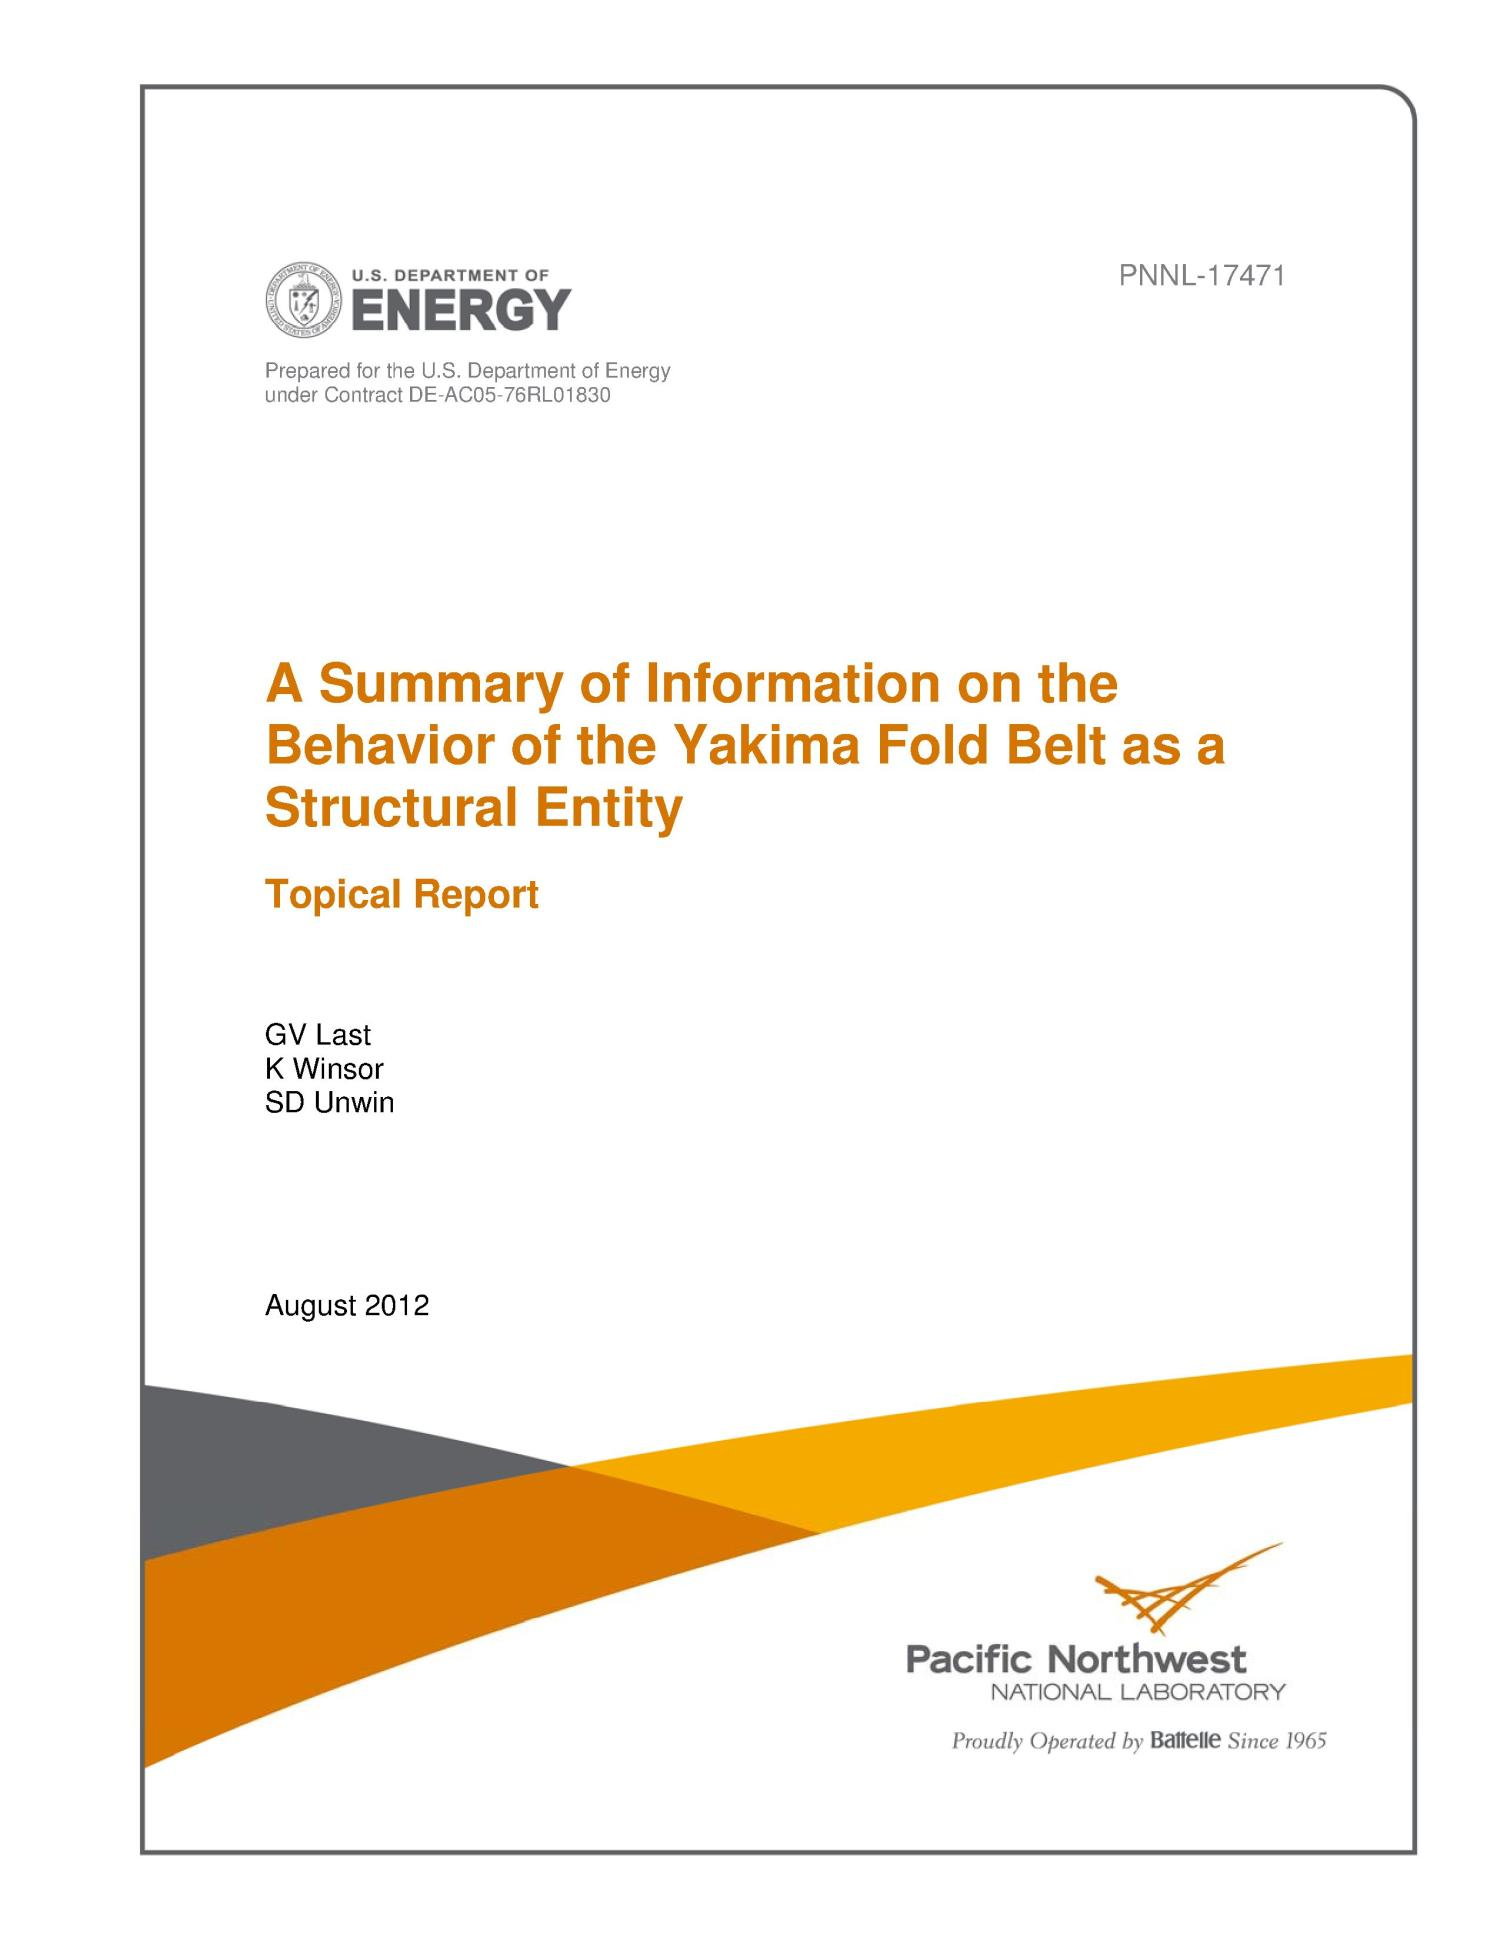 A Summary of Information on the Behavior of the Yakima Fold Belt as a Structural Entity -- Topical Report                                                                                                      [Sequence #]: 1 of 82